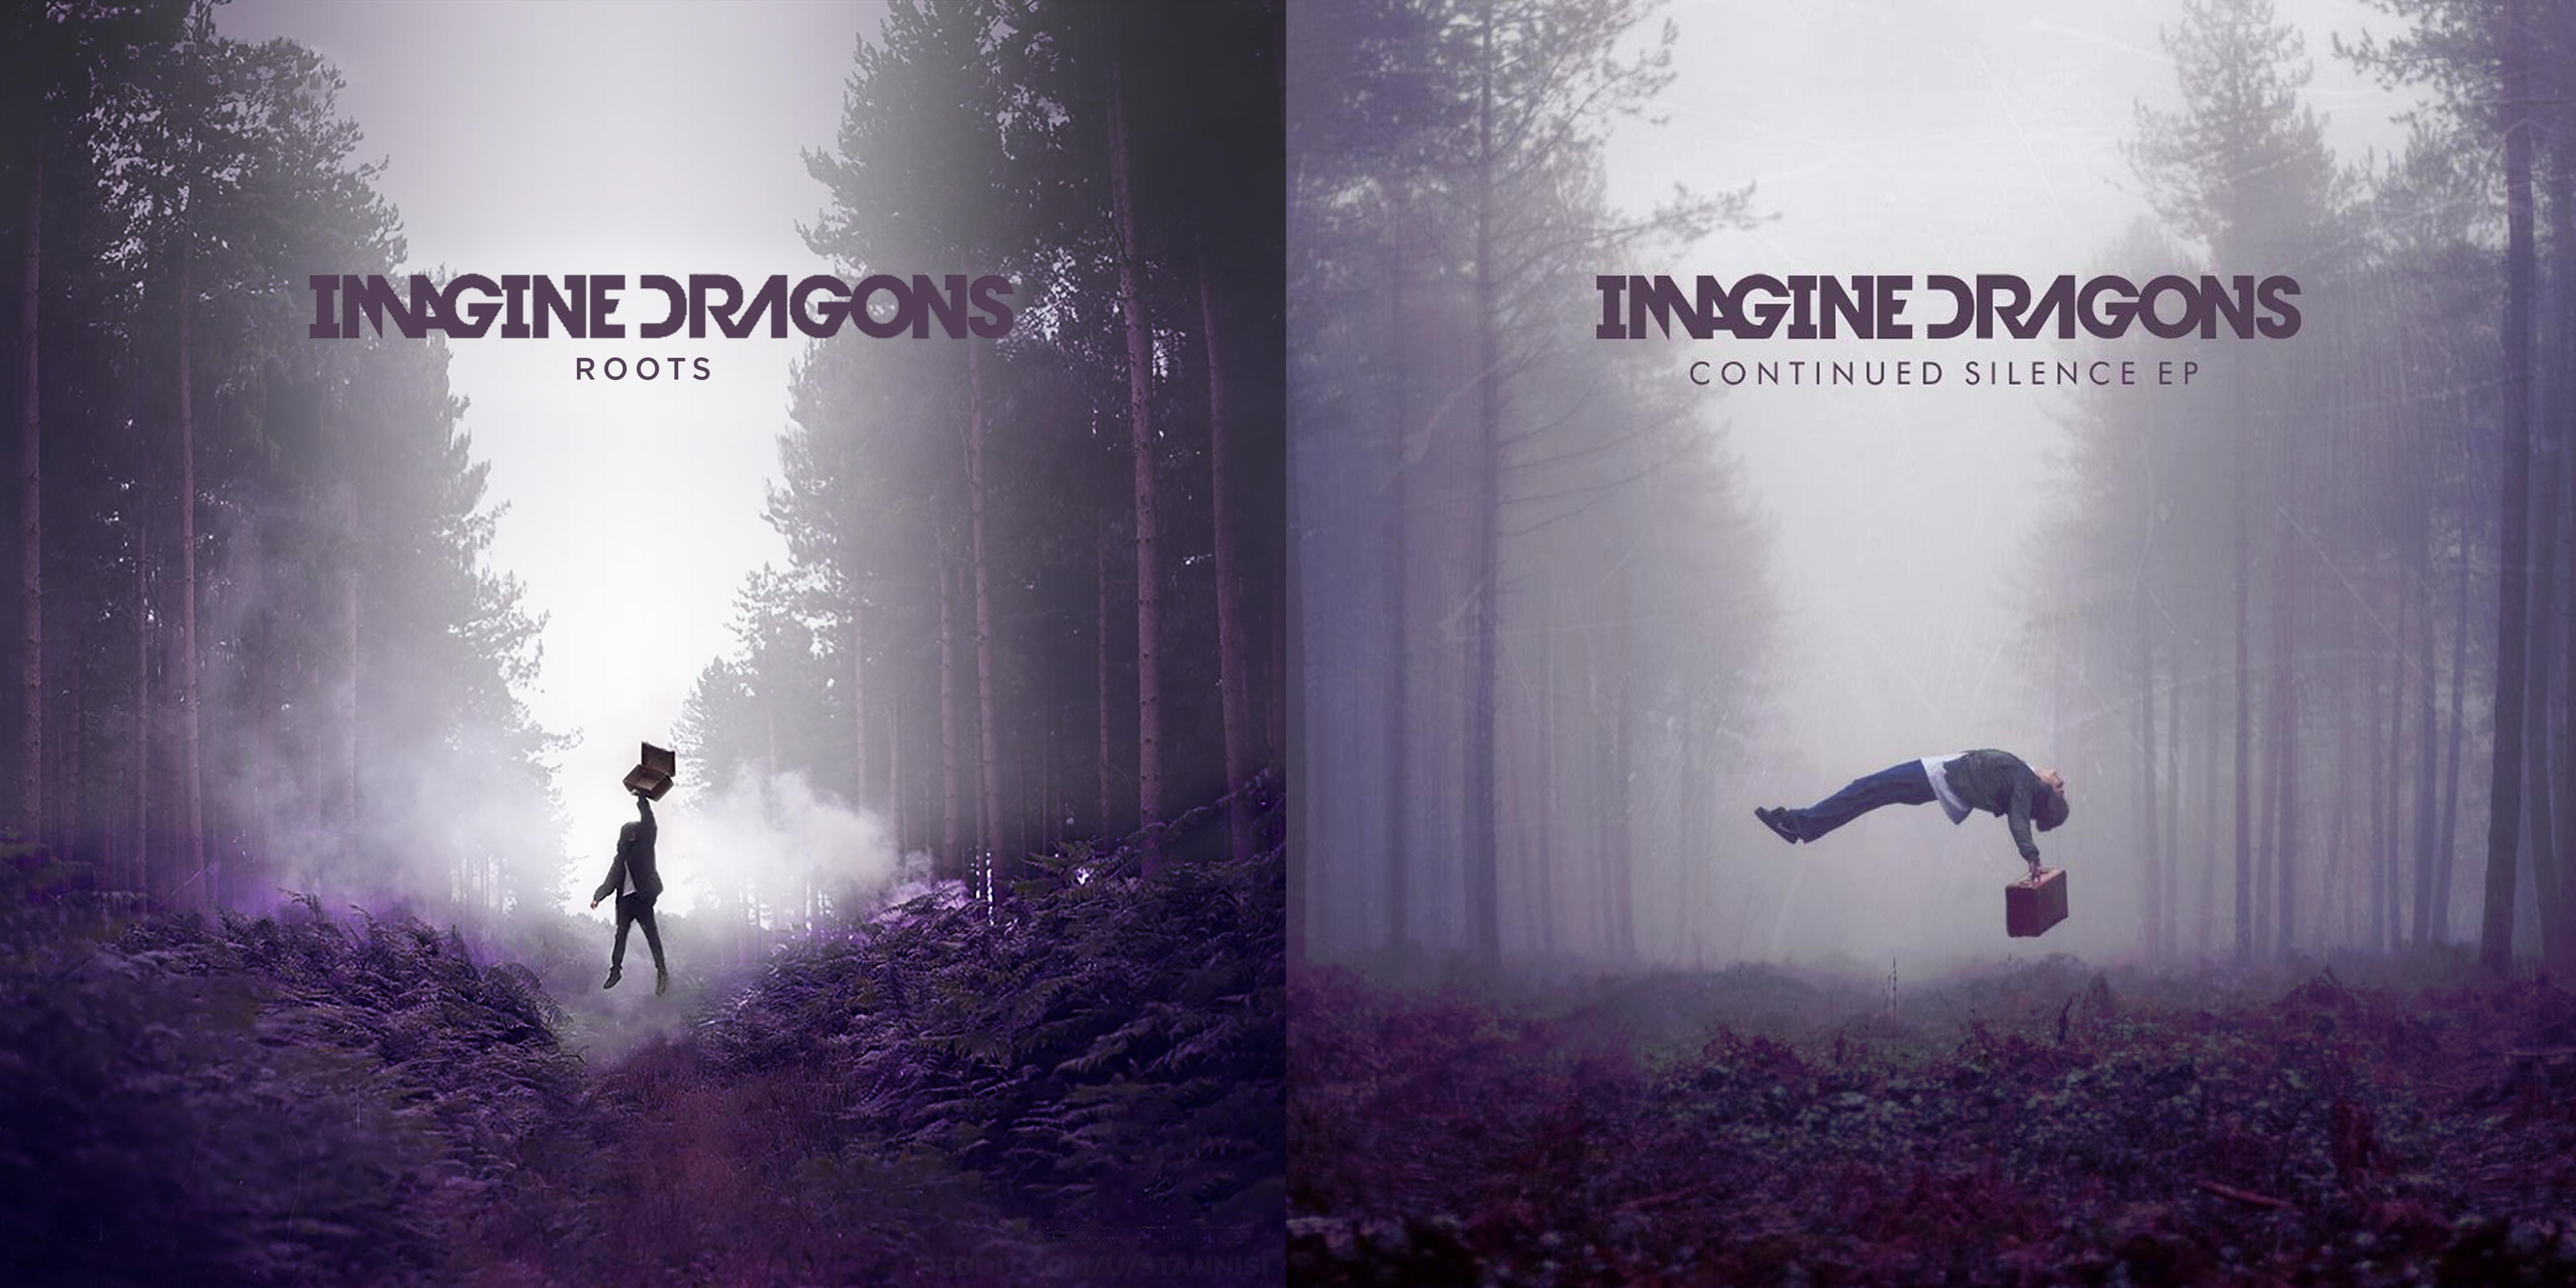 Imagine Dragons Mobile Wallpapers - Wallpaper Cave Imagine Dragons Continued Silence